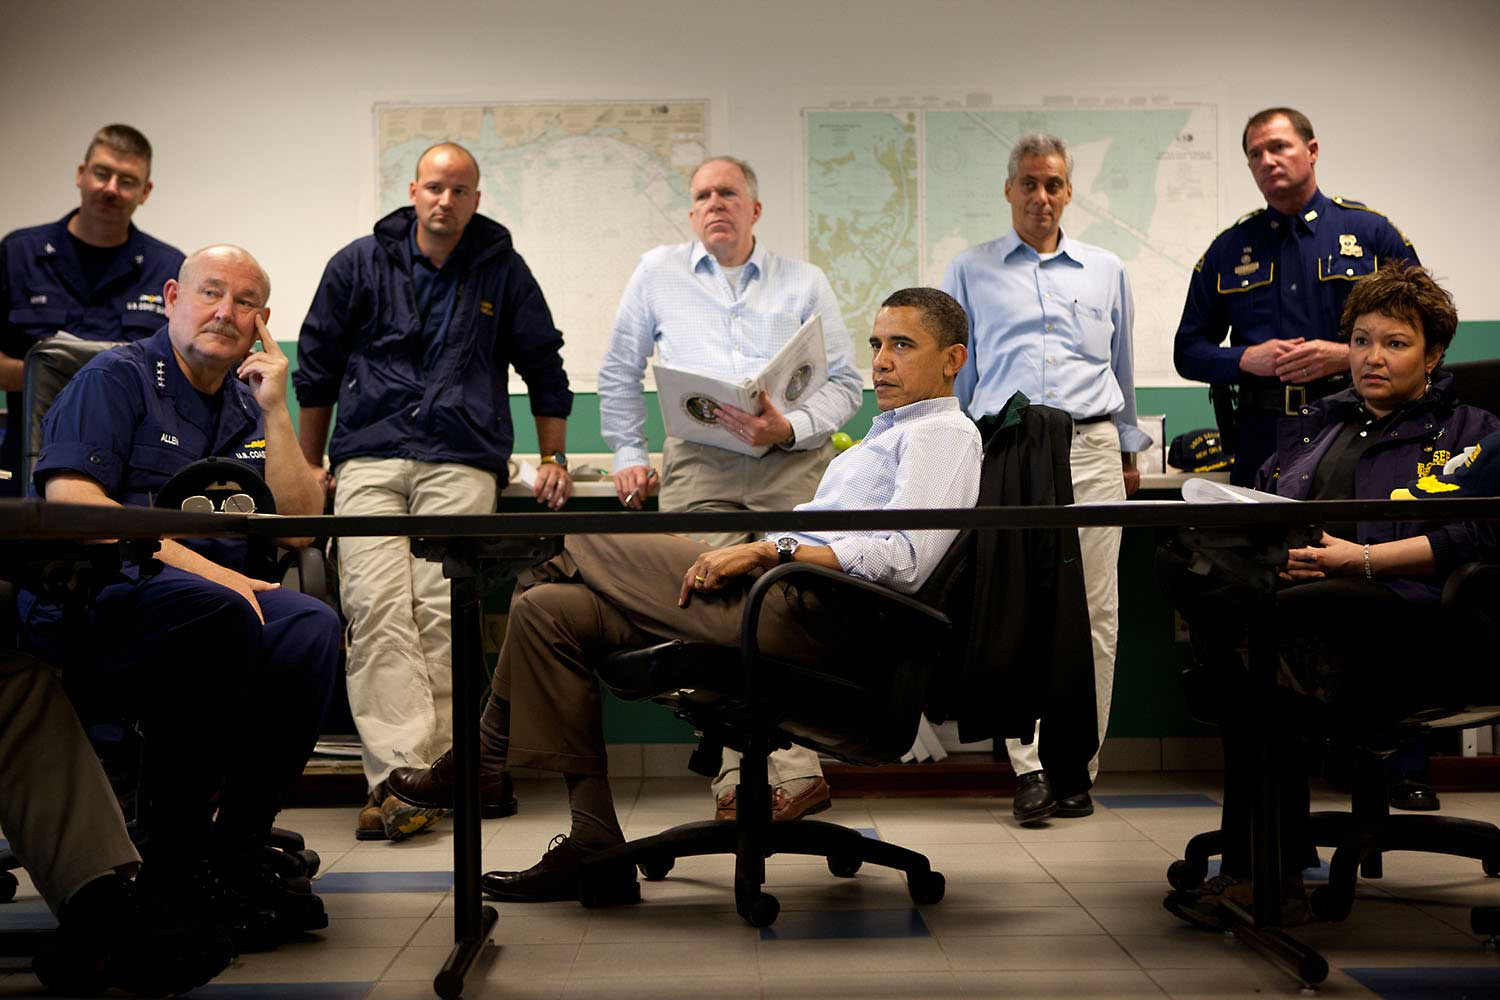 President Obama listens during a briefing about the situation along the Gulf of Mexico coast following the BP oil spill, at the Coast Guard Venice Center, in Venice, La., Sunday, May 2, 2010. Pictured, from left, are Admiral Thad Allen, U.S. Coast Guard Commandant Admiral; John Brennan, Assistant to the President for Homeland Security and Counterterrorism; Chief of Staff Rahm Emanuel; and EPA Administrator Lisa Jackson.